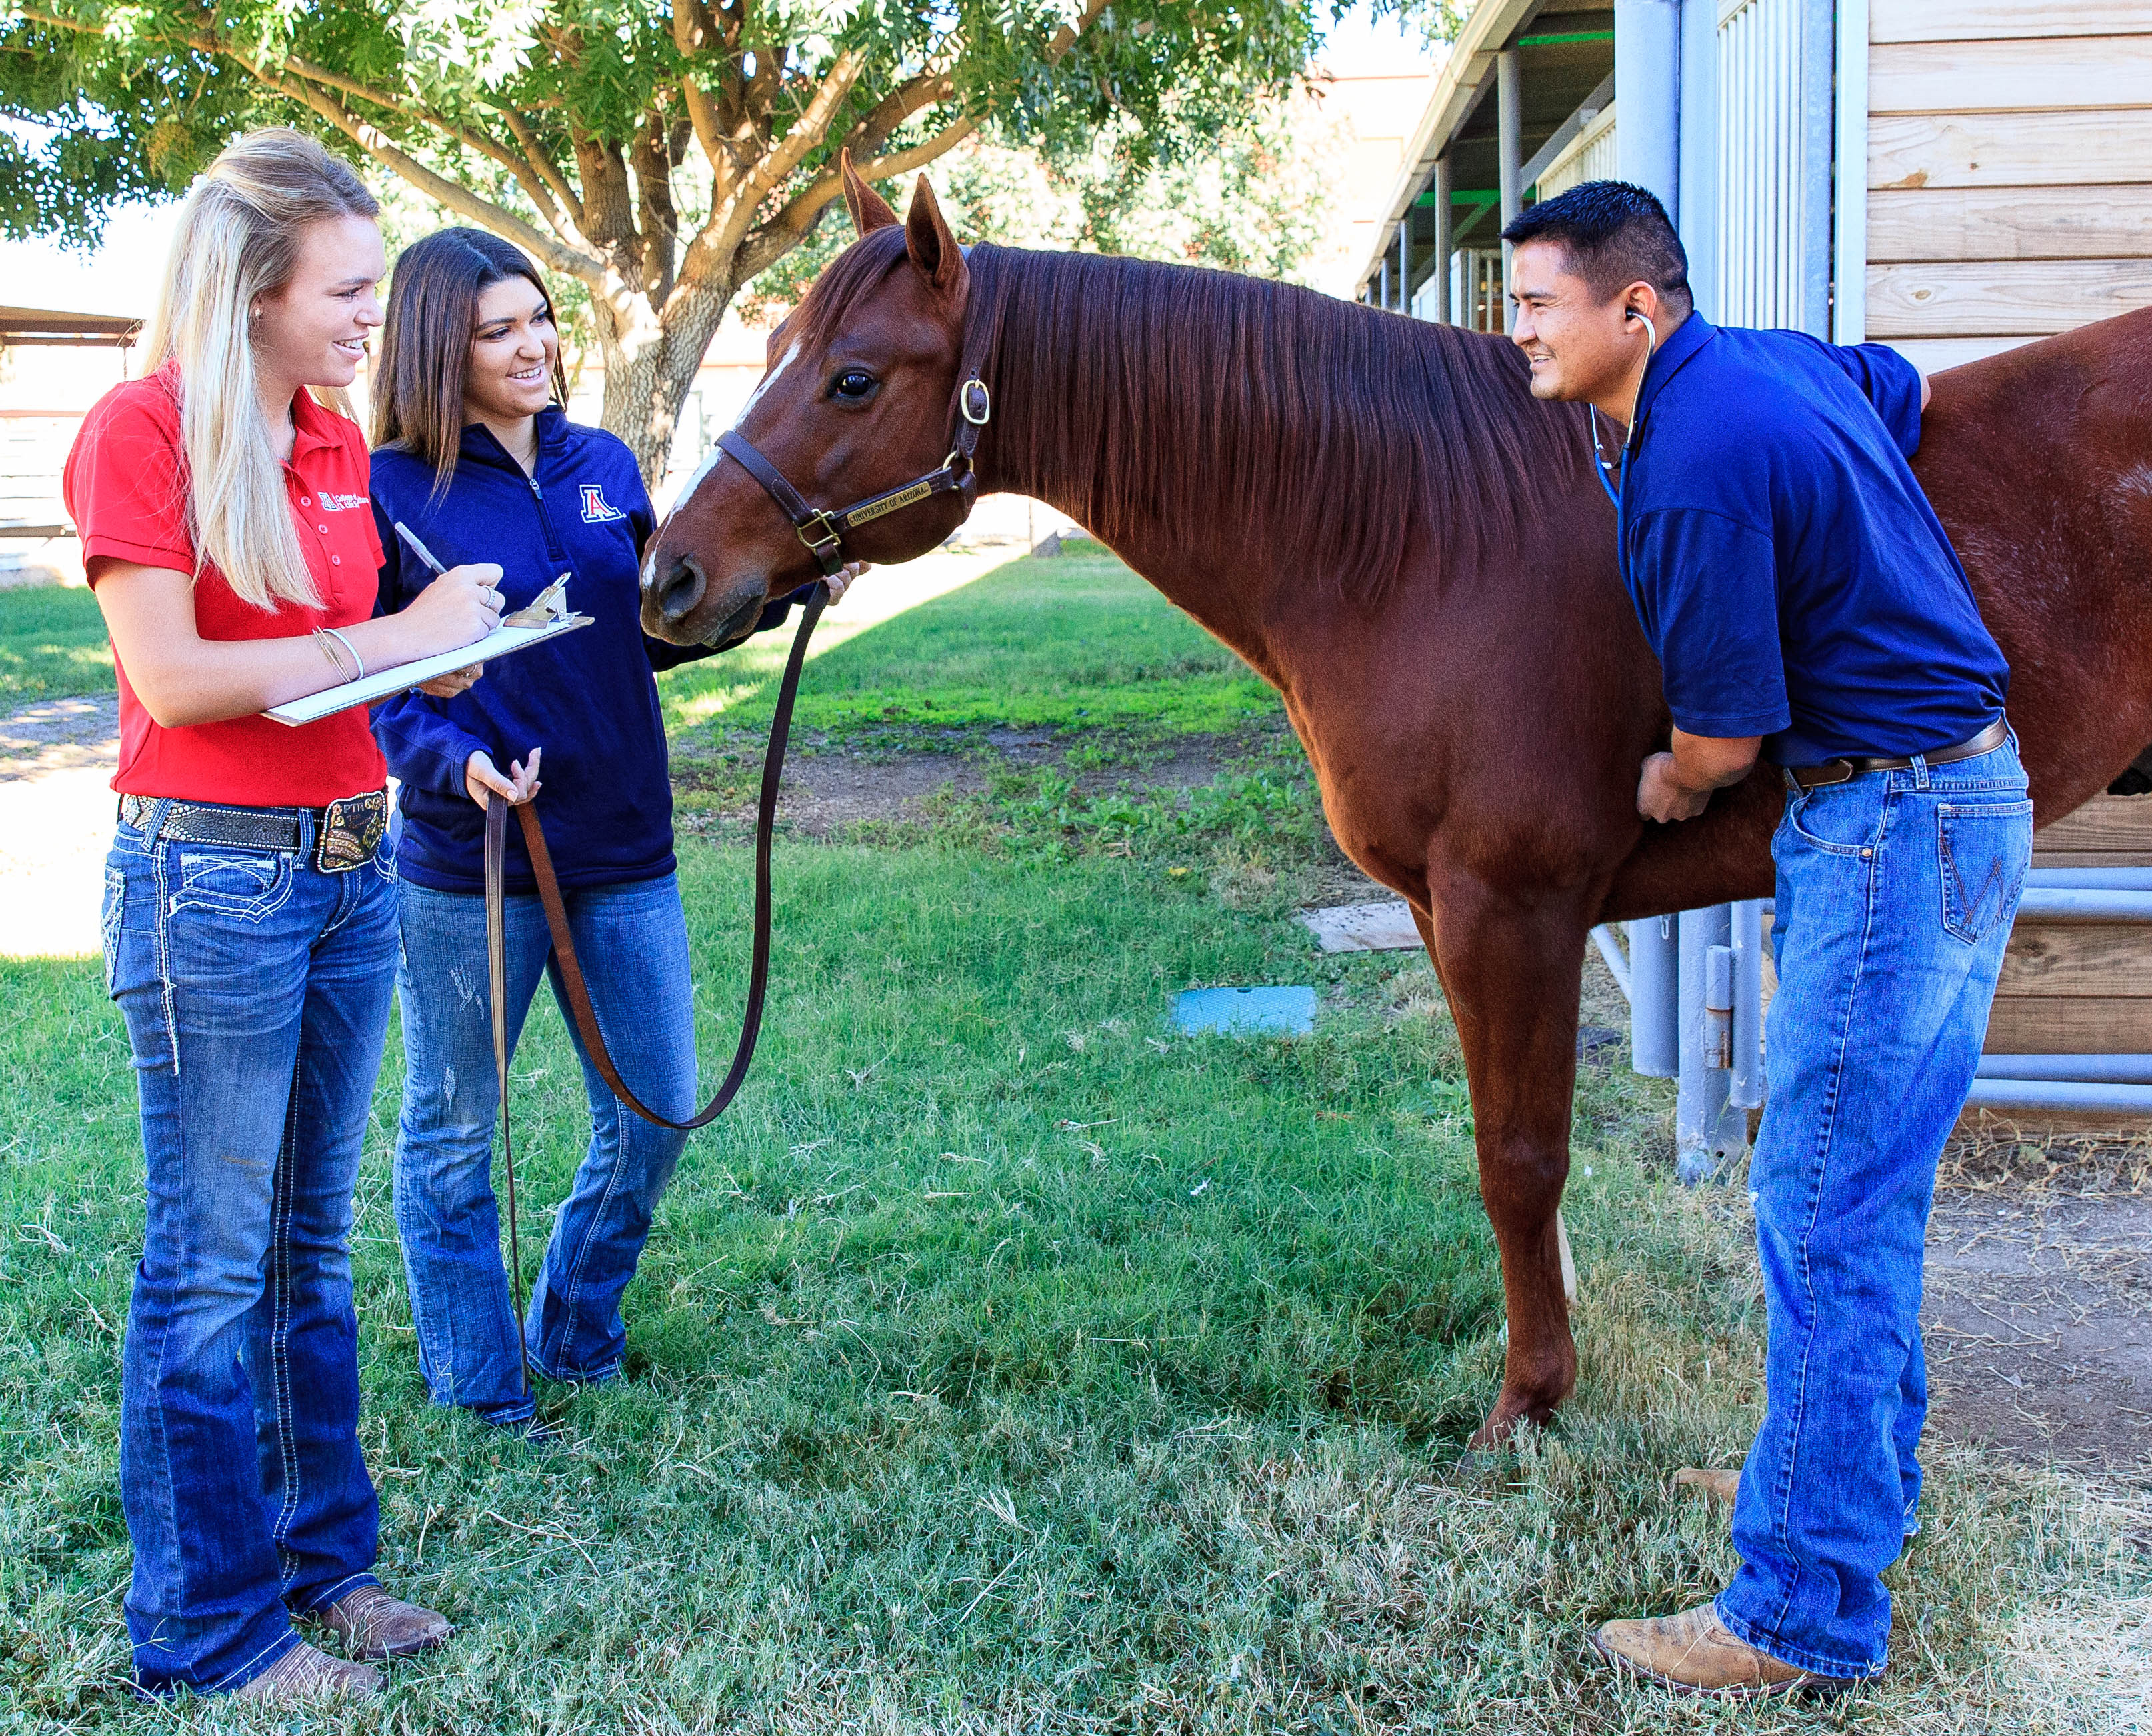 Students recording vital signs of horse